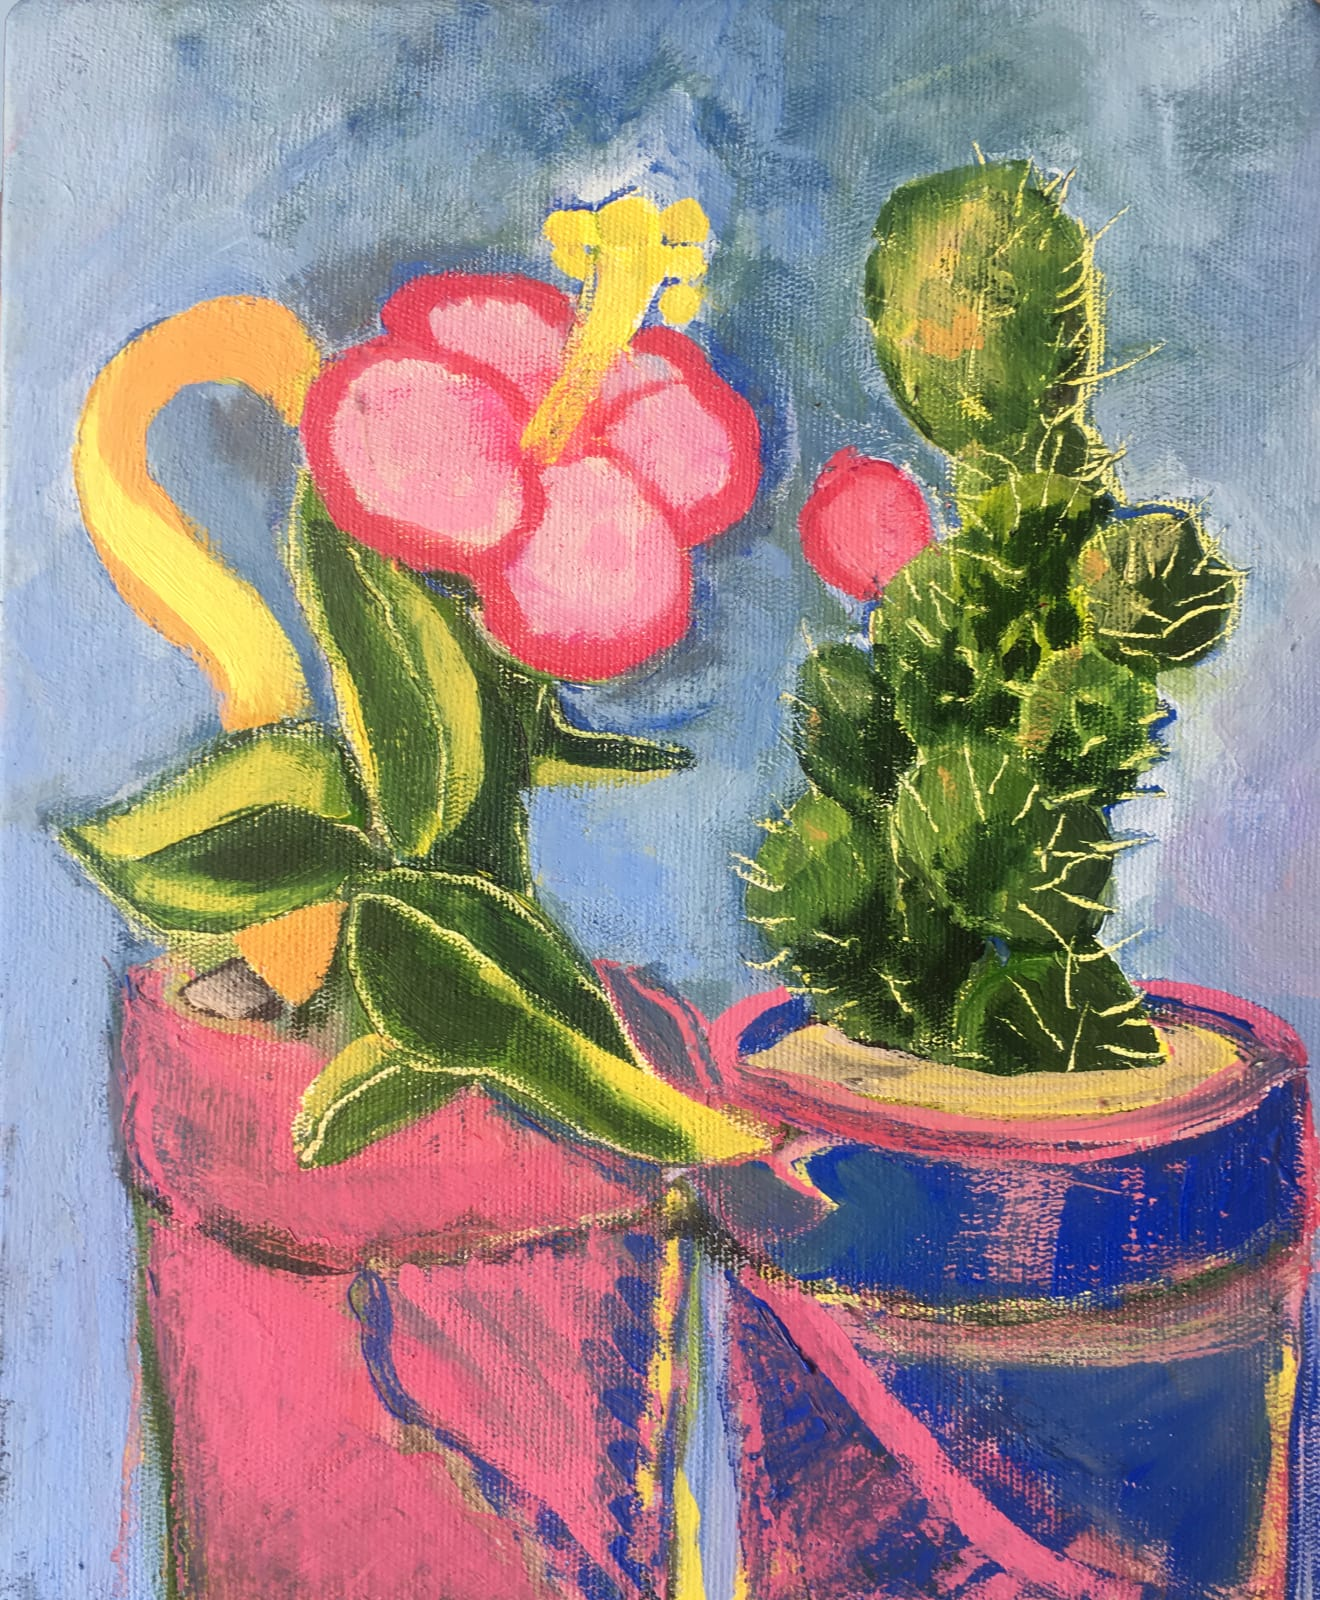 Ari Lankin, The Flower and The Cactus, 2018